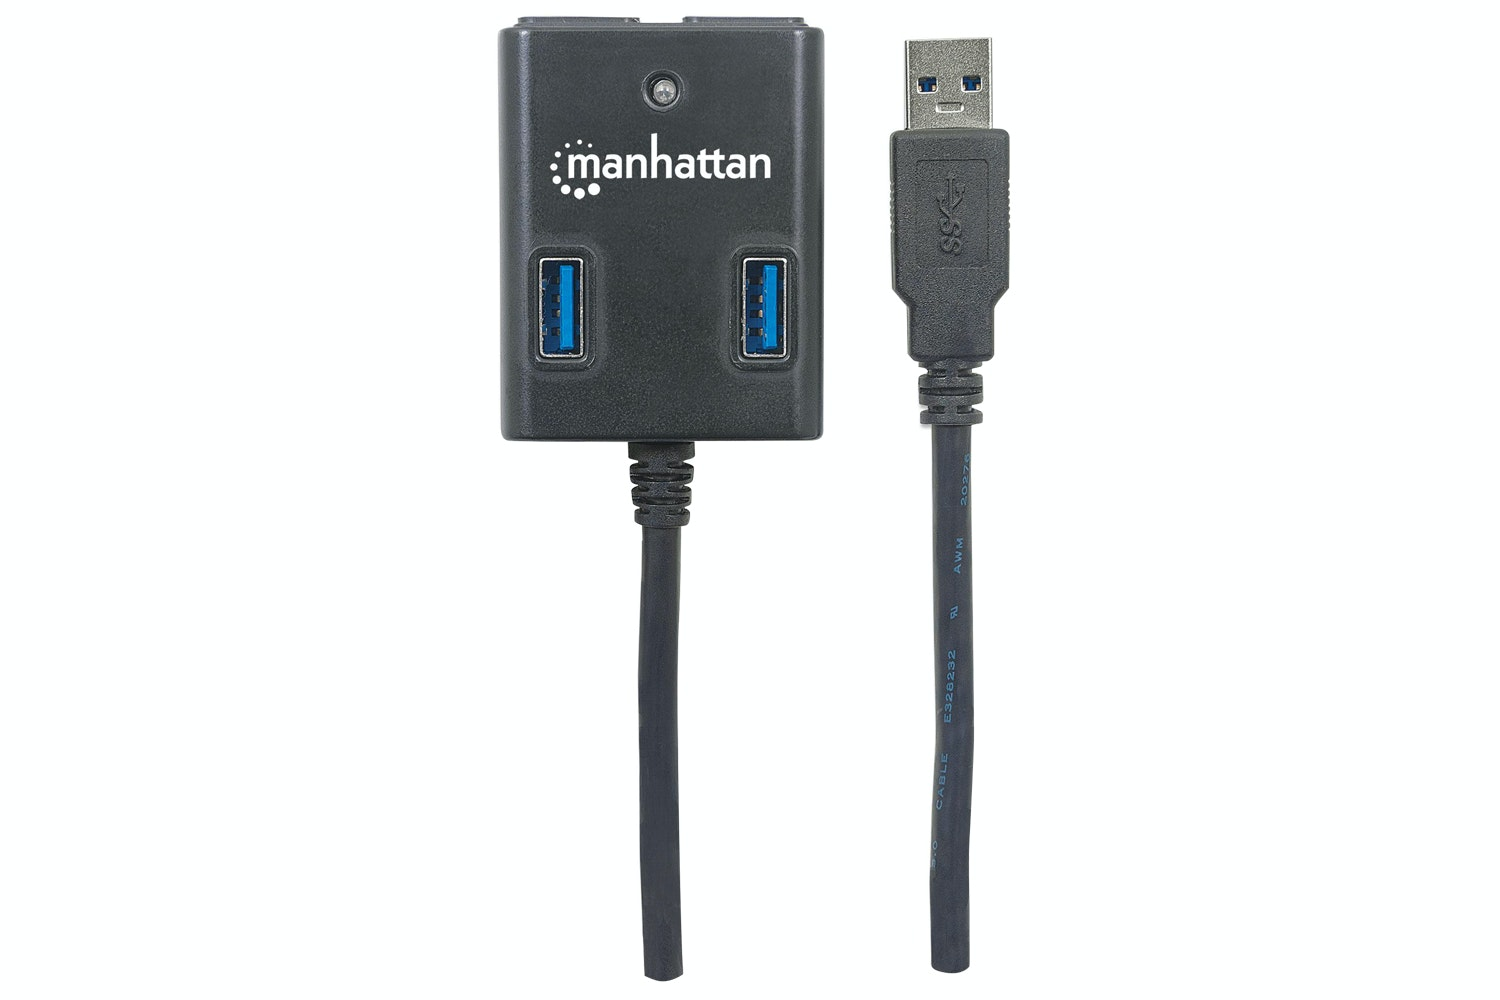 Manhattan SuperSpeed USB 3.0 Hub